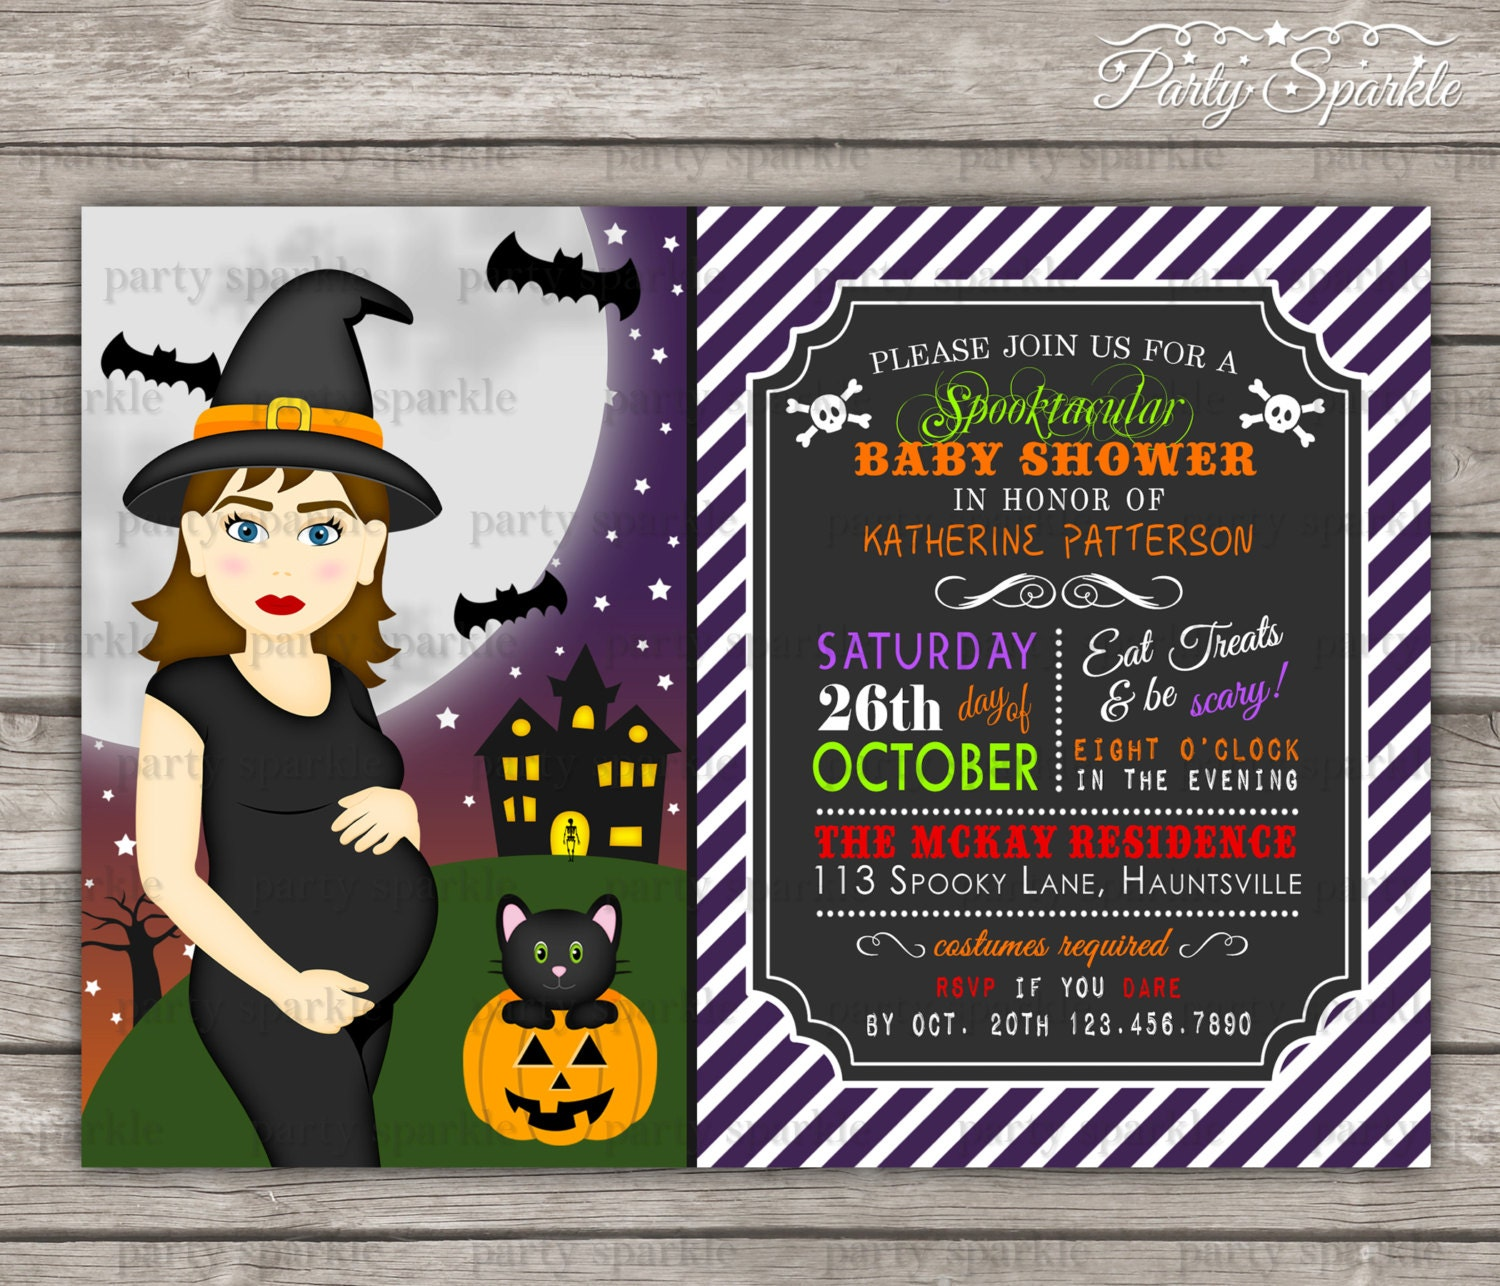 Costume Birthday Party Invitation is good invitations ideas